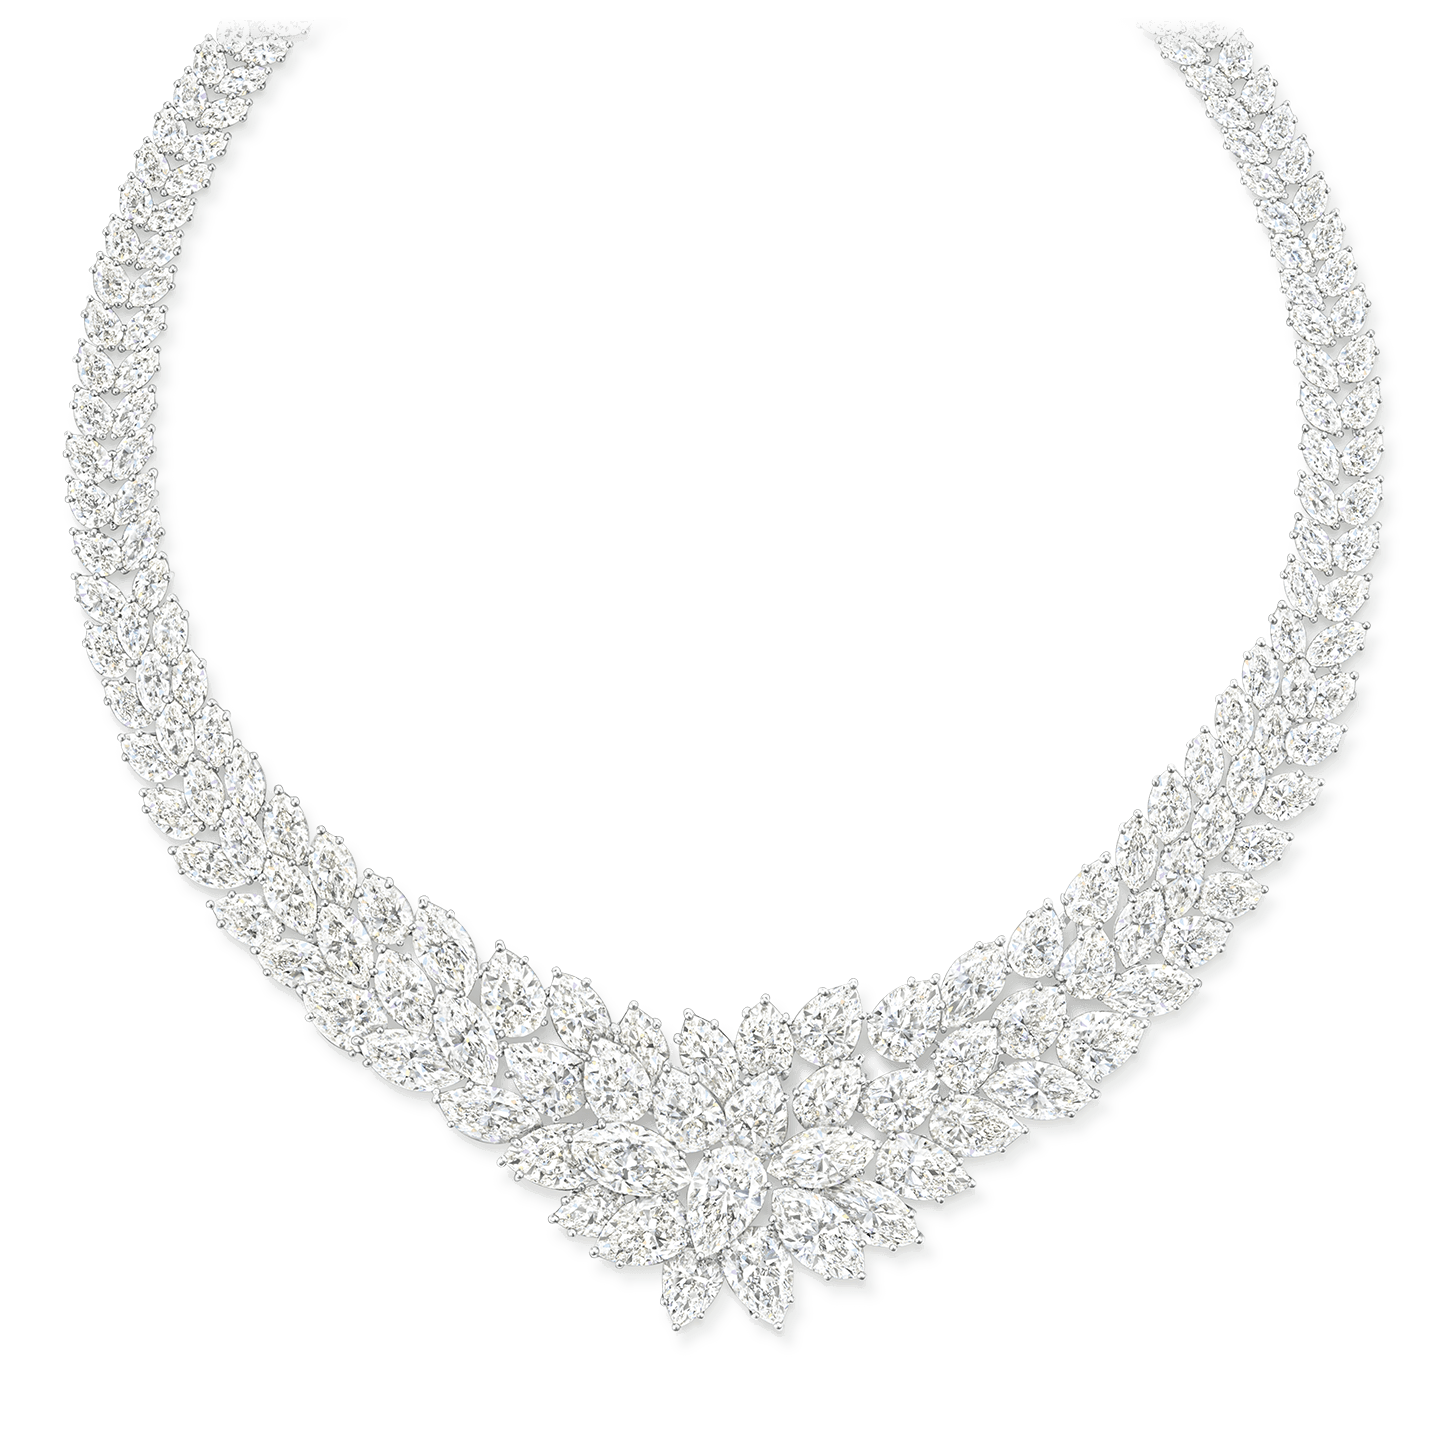 A necklace featuring 195 marquise and pear-shaped diamonds weighing a total of approximately 136.66 carats, set in platinum.